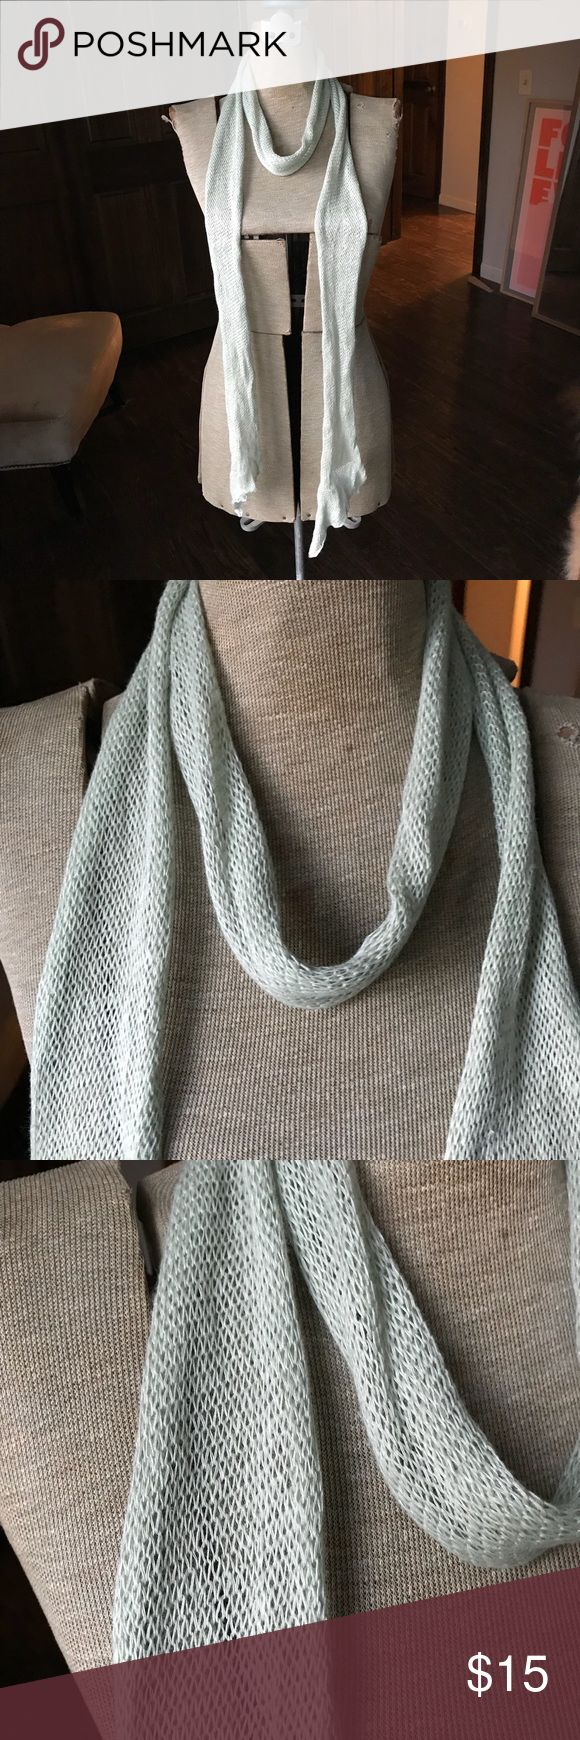 "Nicole Farhi Knit Linen Scarf, Subtle Green Nicole Farhi Knit 100% Linen Scarf, Subtle Muted Green. Long and skinny, 90"" NICOLE FARHI Accessories Scarves & Wraps"